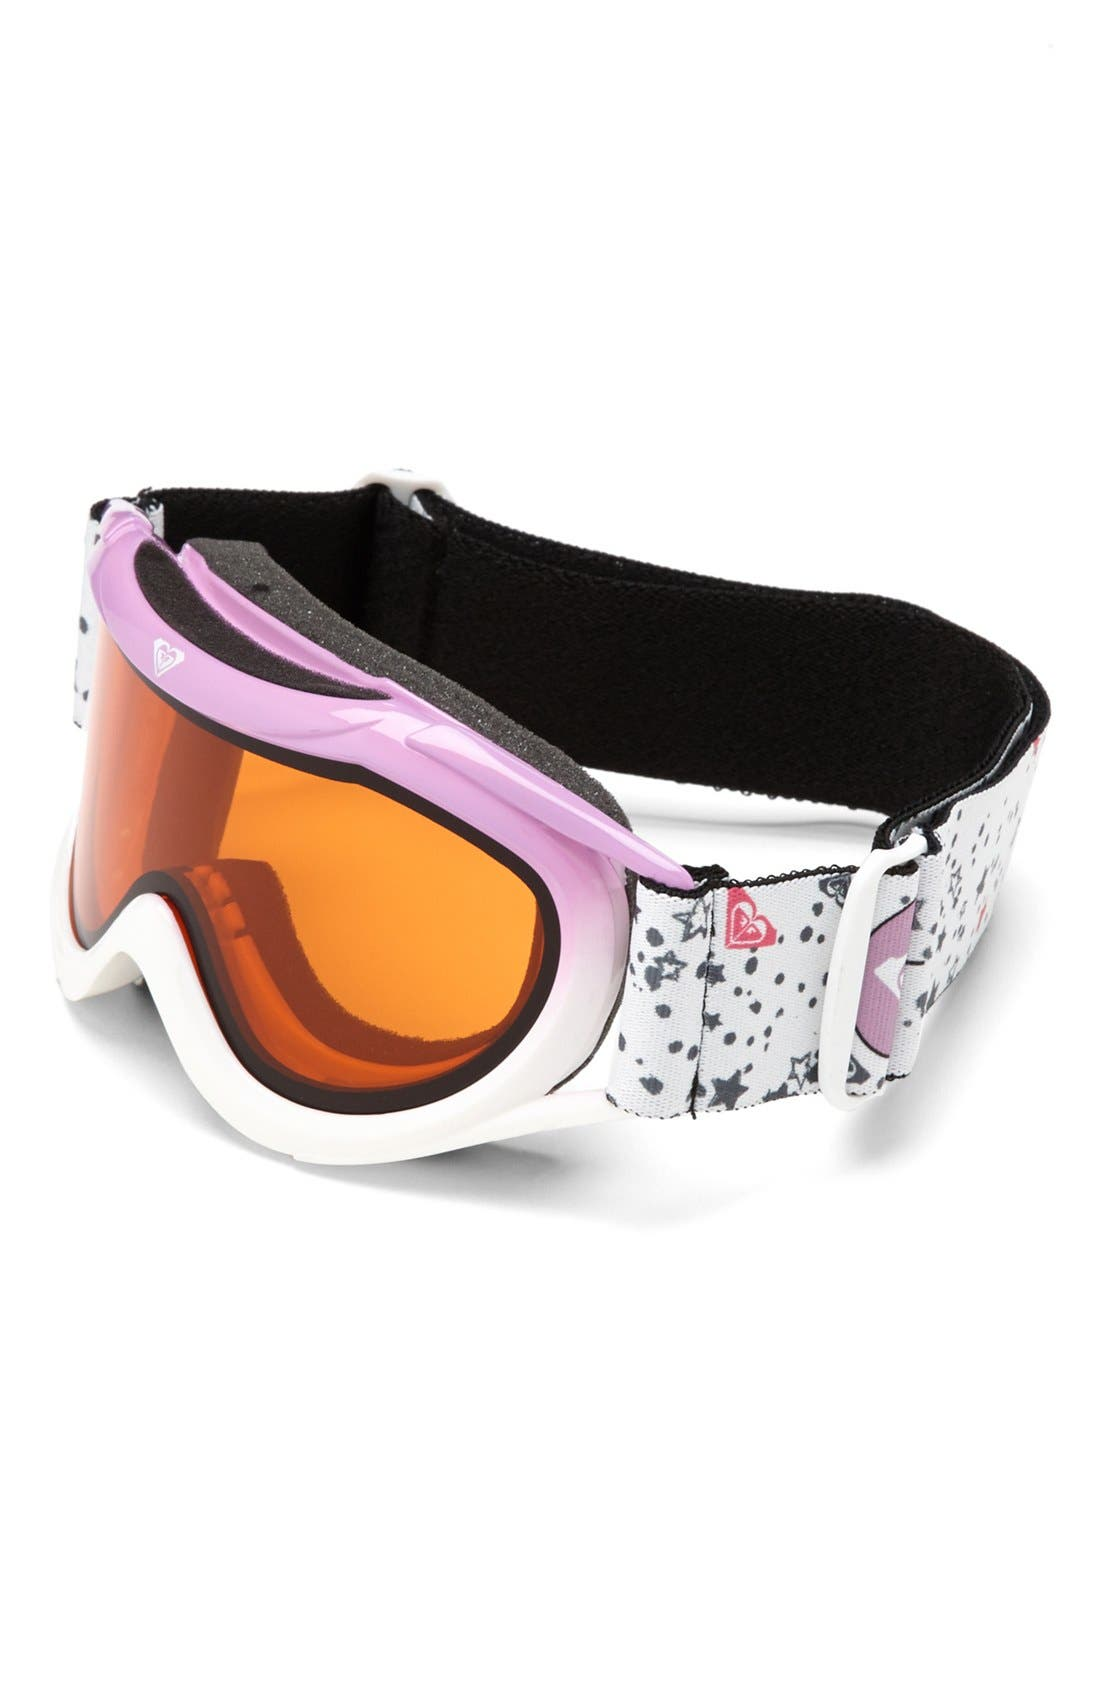 Alternate Image 1 Selected - Roxy 'Loola' Snow Goggles (Girls)